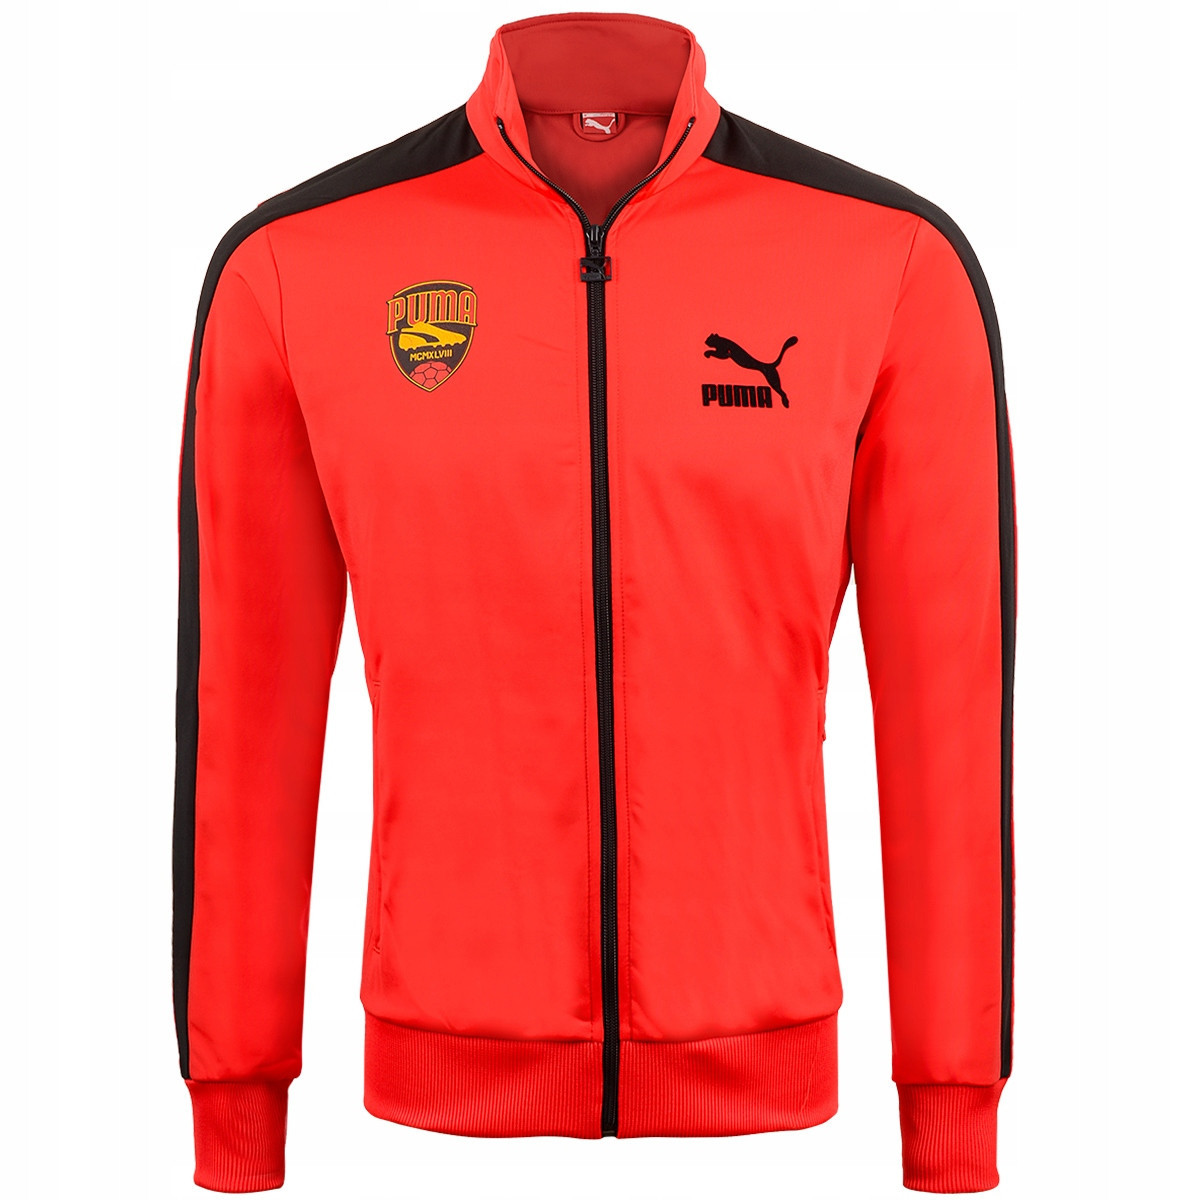 Олімпійка Puma Country 03 M Red